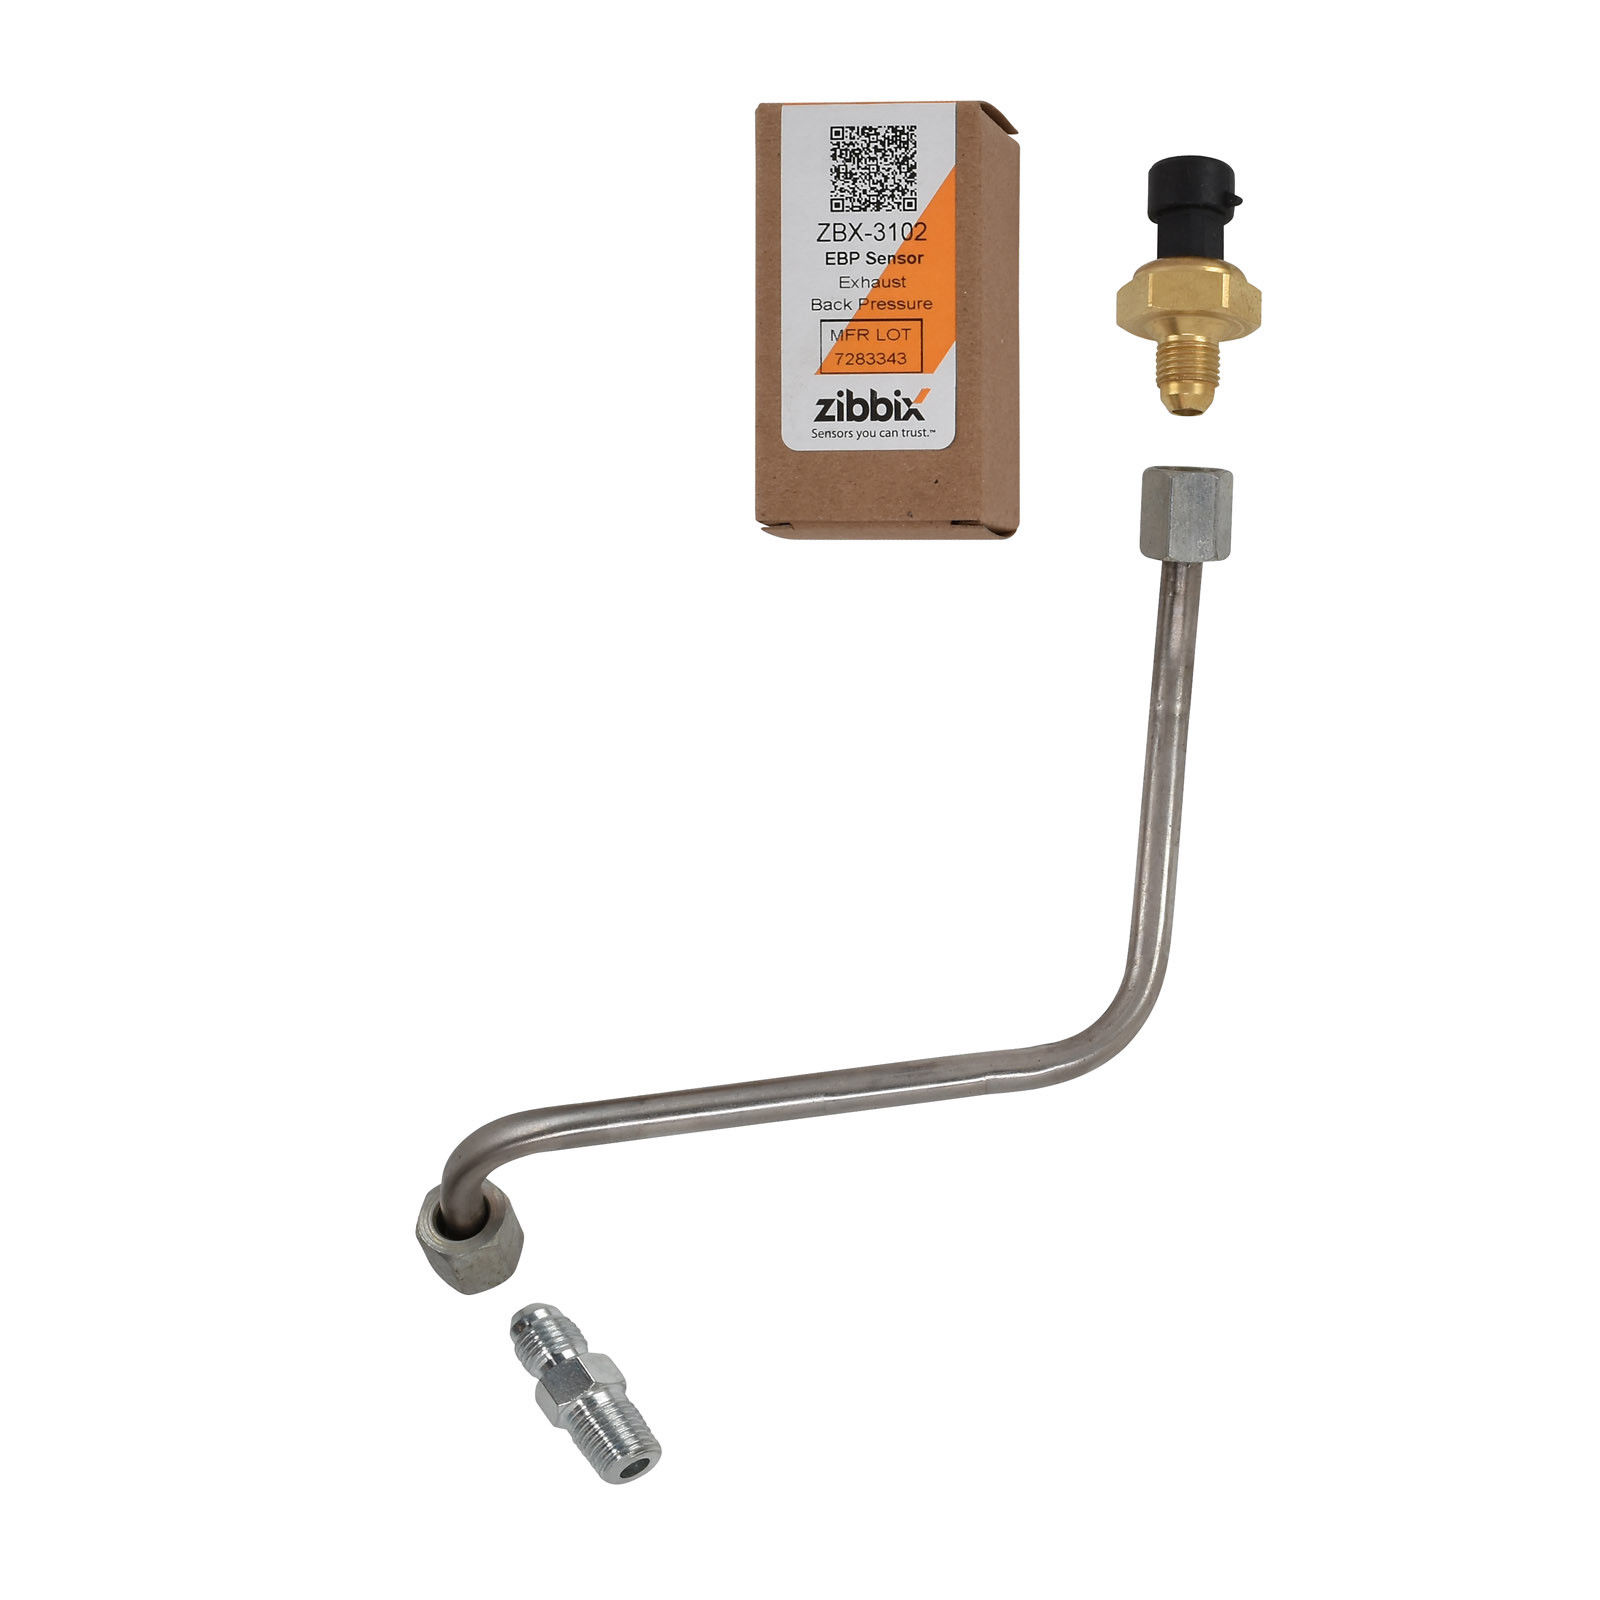 Zibbix ZBX-3102-TK4 EBP Exhaust Back Pressure Sensor Tube Kit For 05.5-10 6.0L Ford Powerstroke Diesel